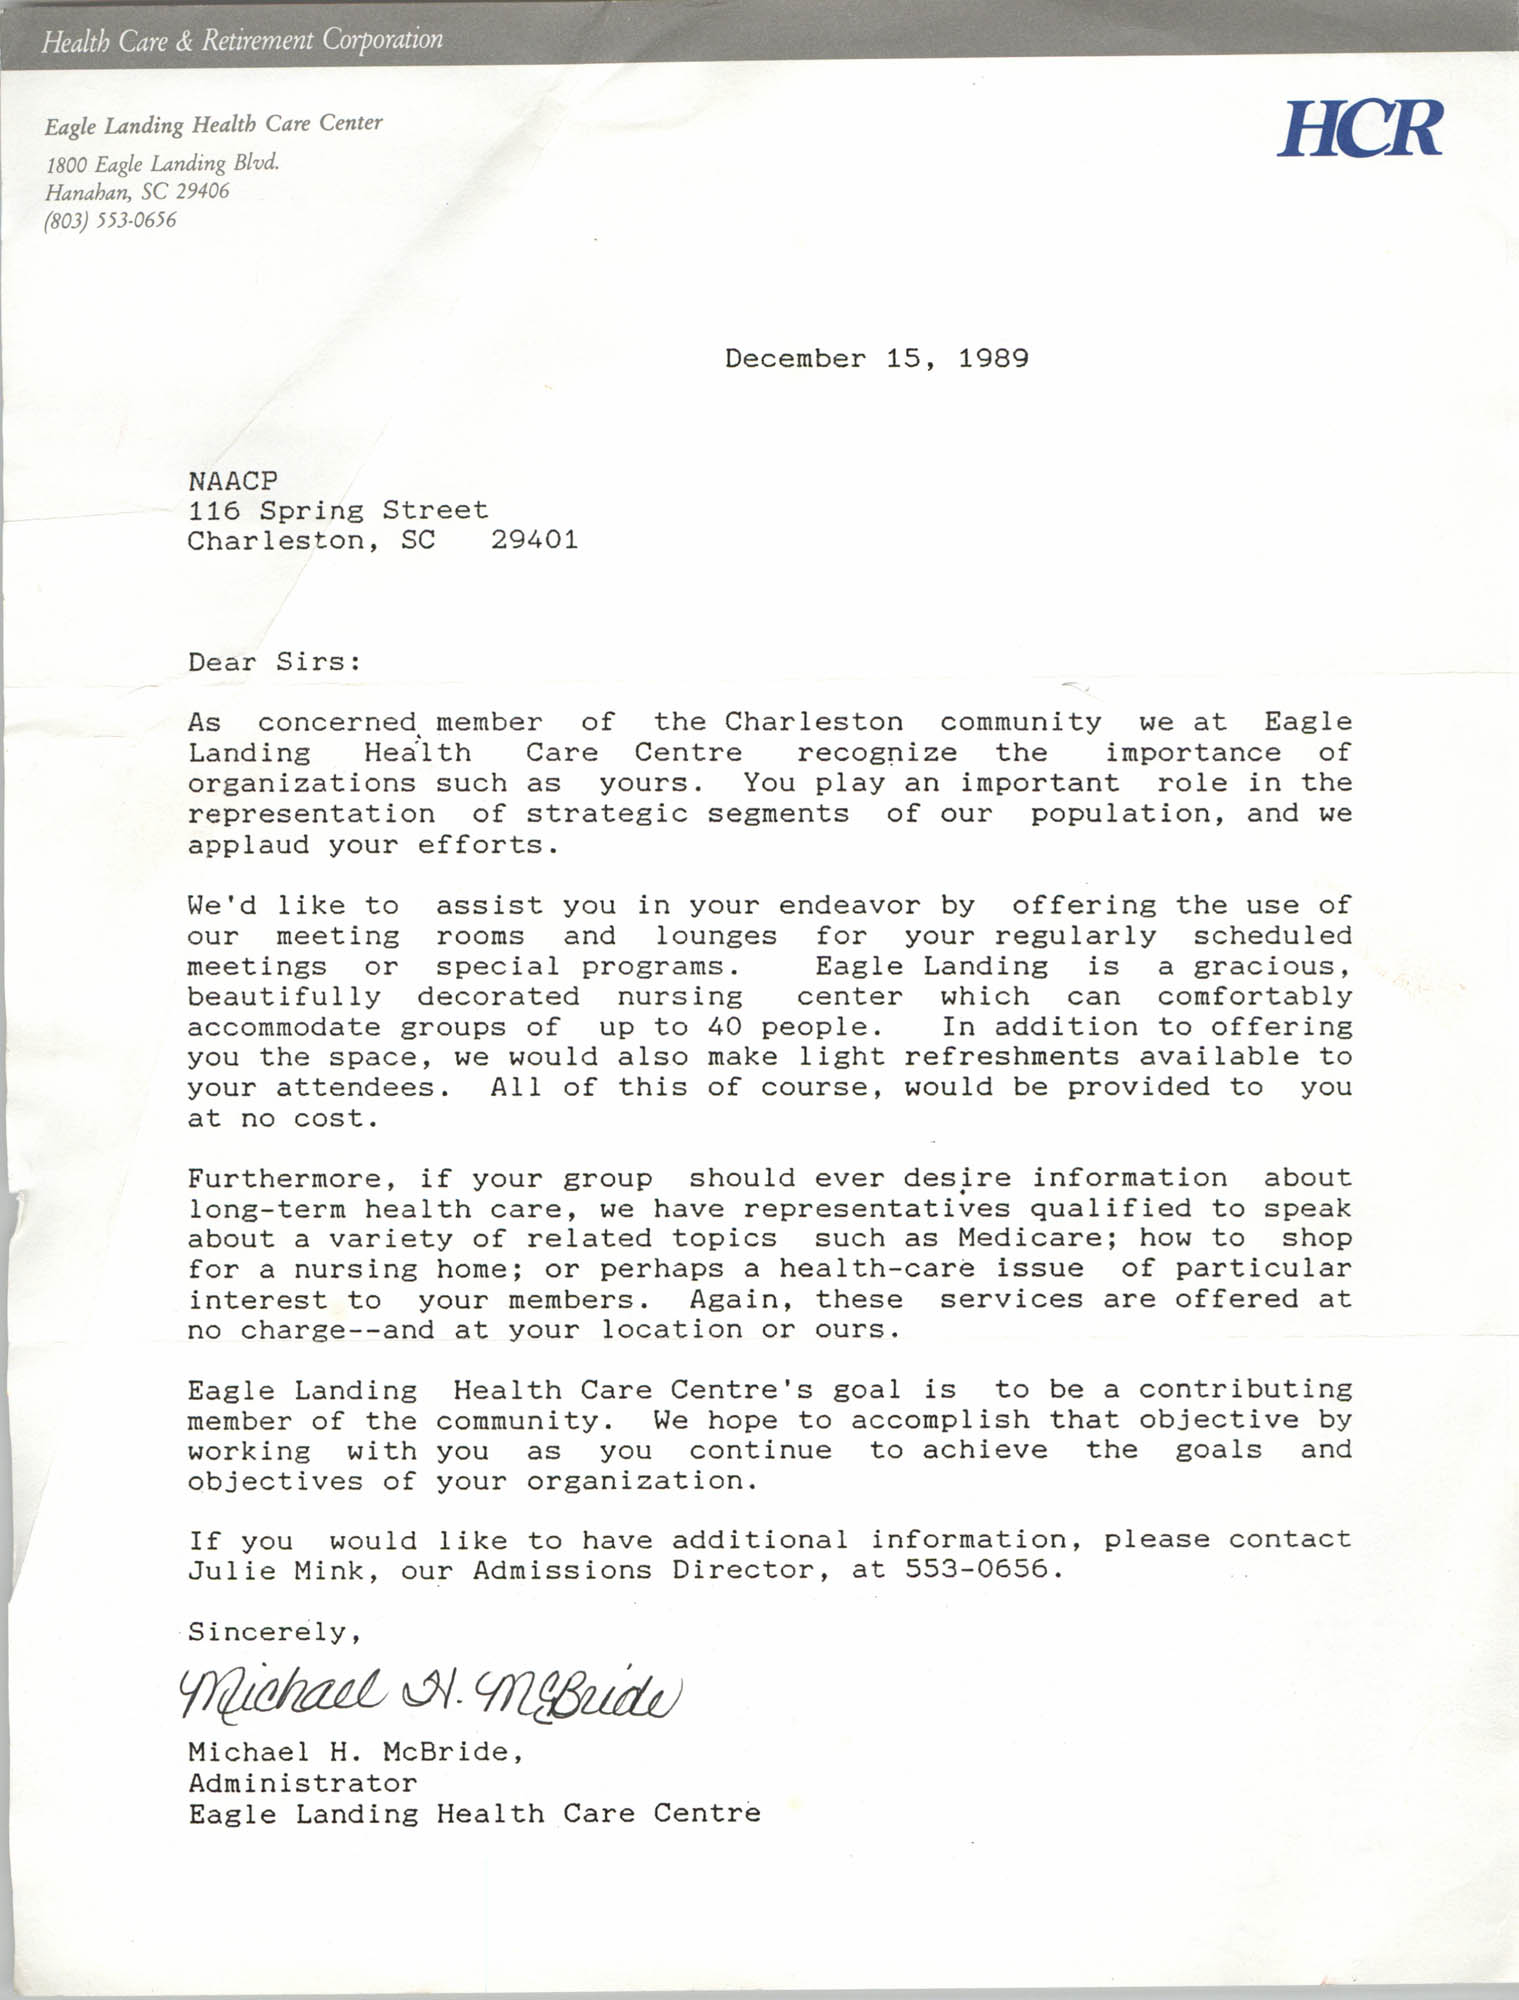 Letter from Michael H. McBride to Charleston Chapter of NAACP, December 15, 1989